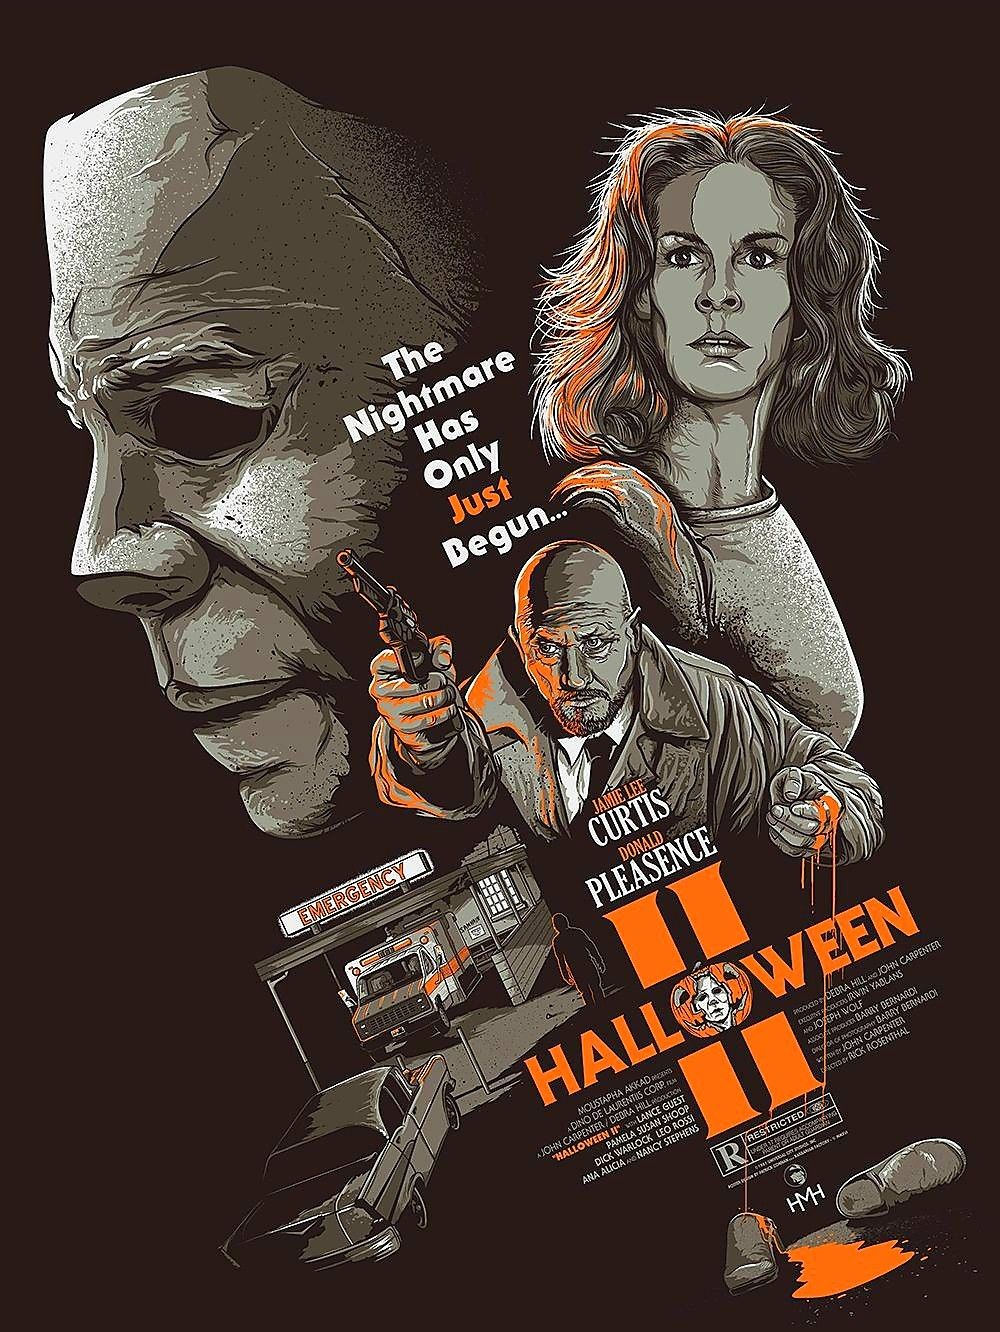 Pin by Anthony Cutforth on Halloween (With images